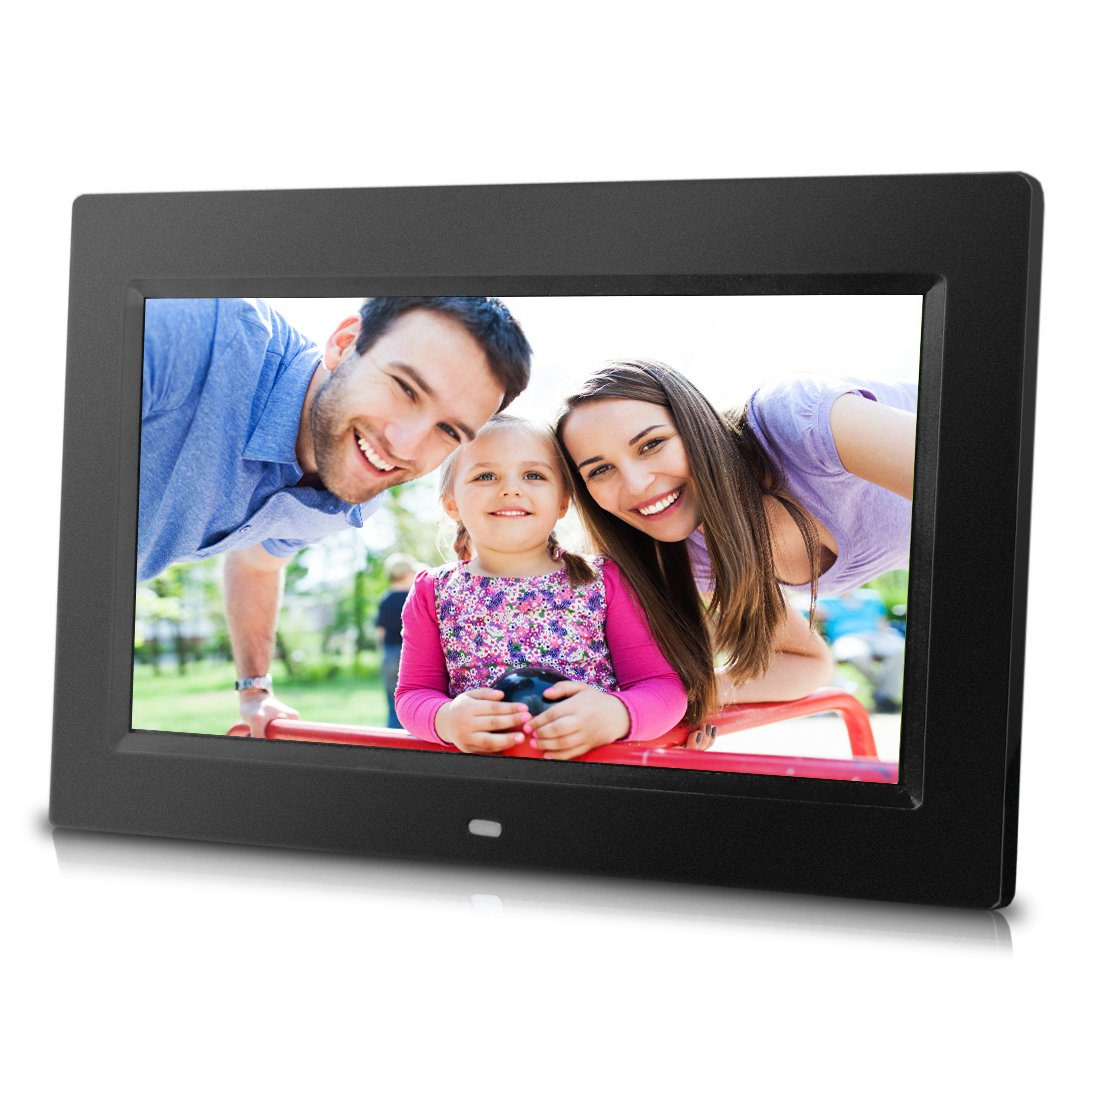 10 inch Digital Photo Frame with Remote Control, High Resolution 1024x600 LCD screen, Built-in Slideshow & adjustable Interval Time, Wall-mountable, Easy Set-up (Black) by Sungale